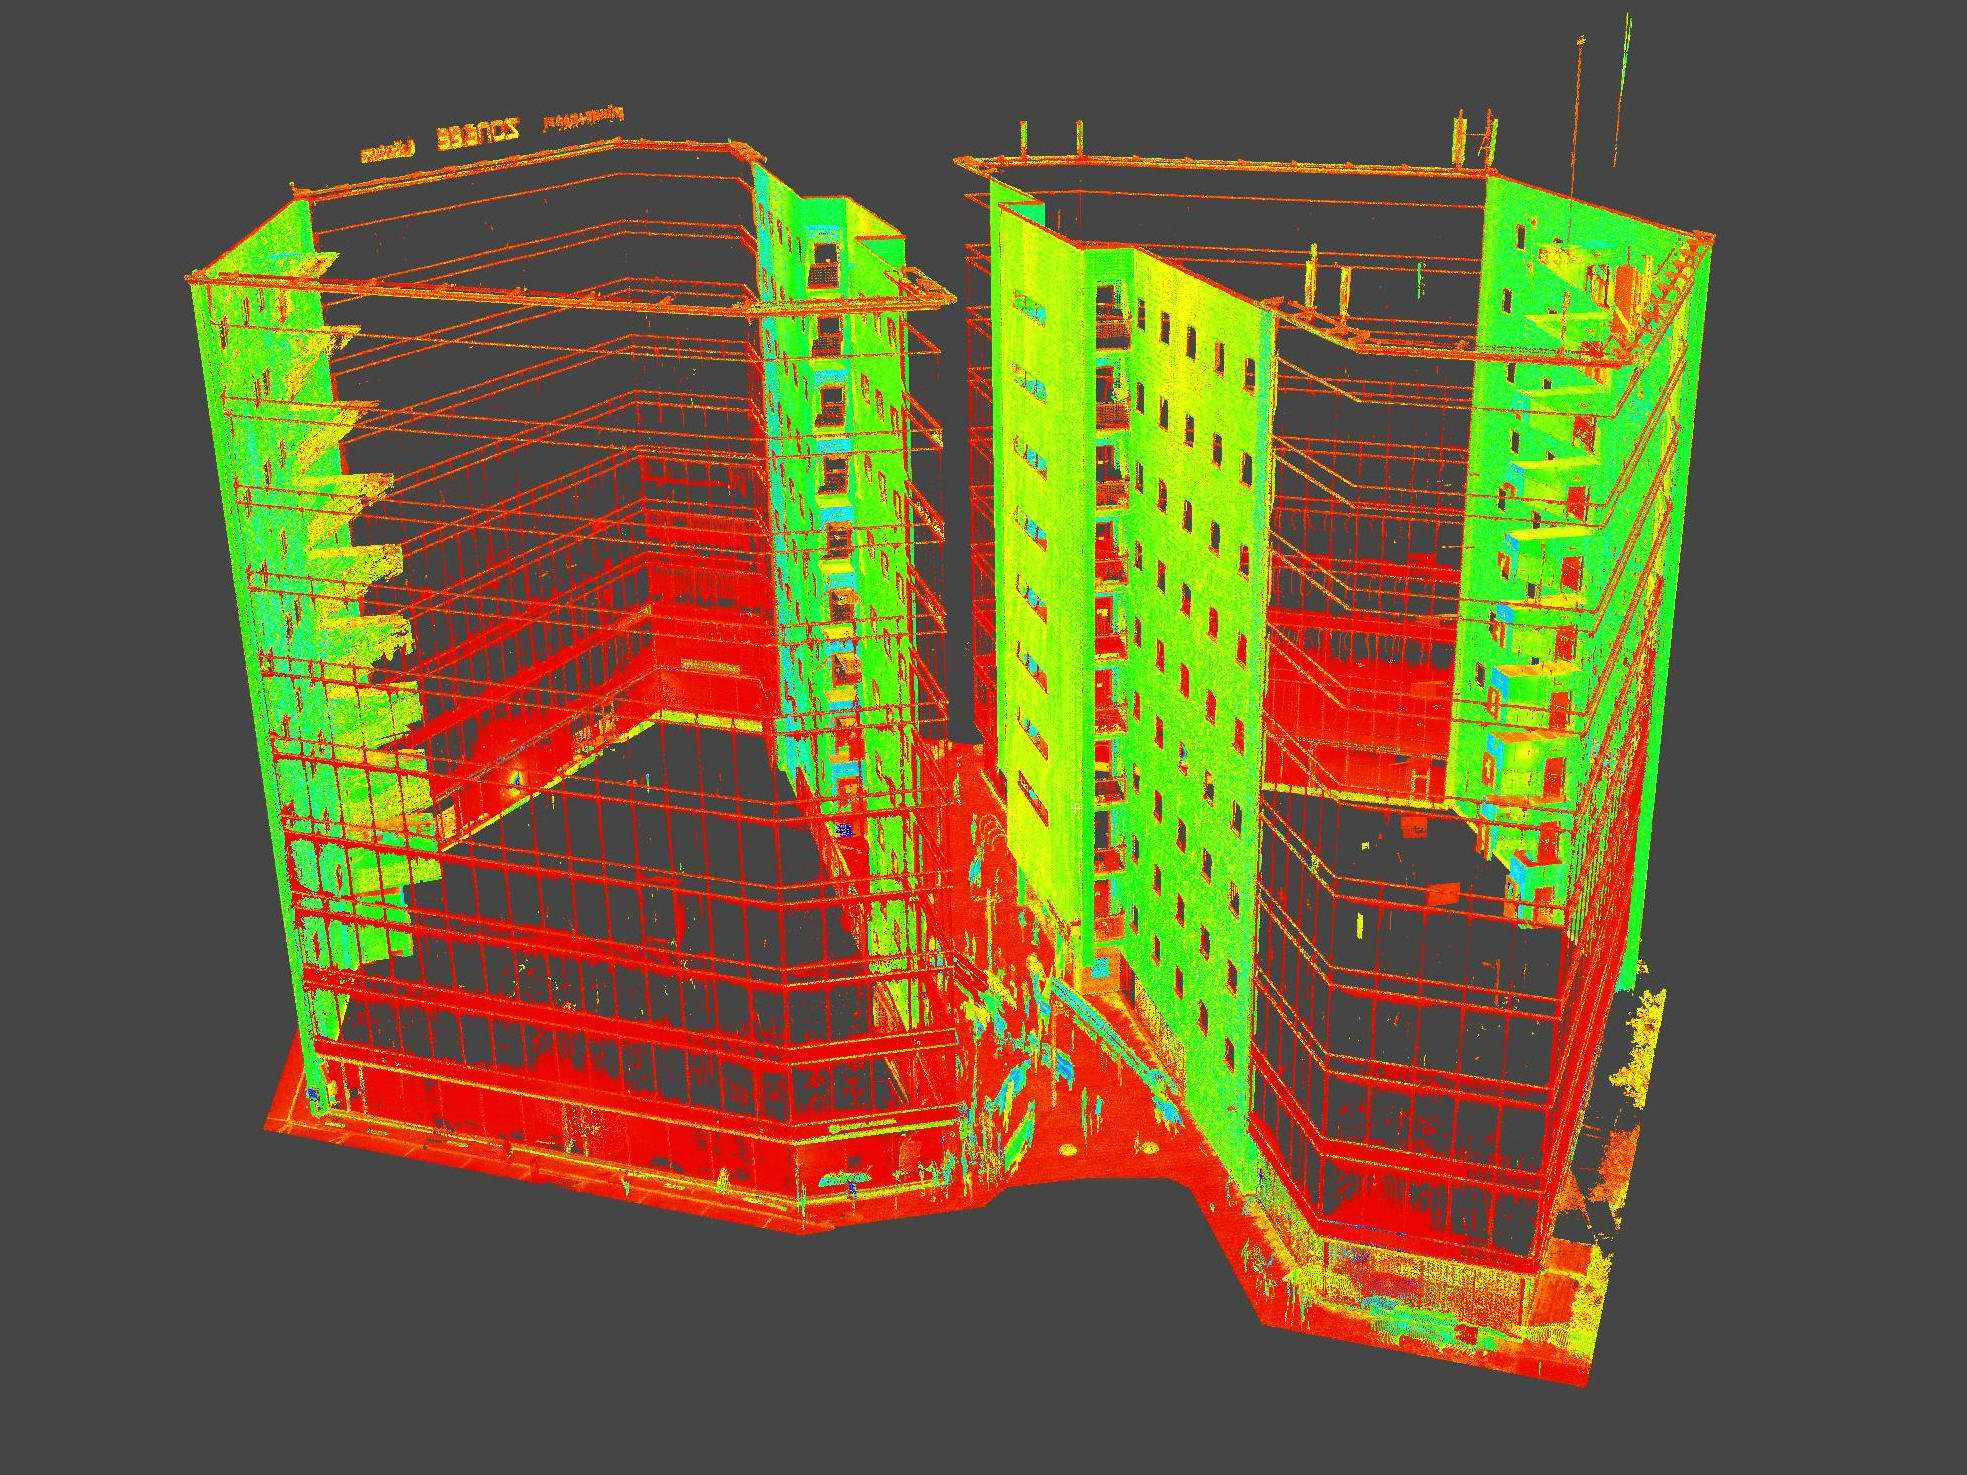 Laser scanning of the facades of the buildings Lõõtsa 2a and Lõõtsa 2b in Tallinn